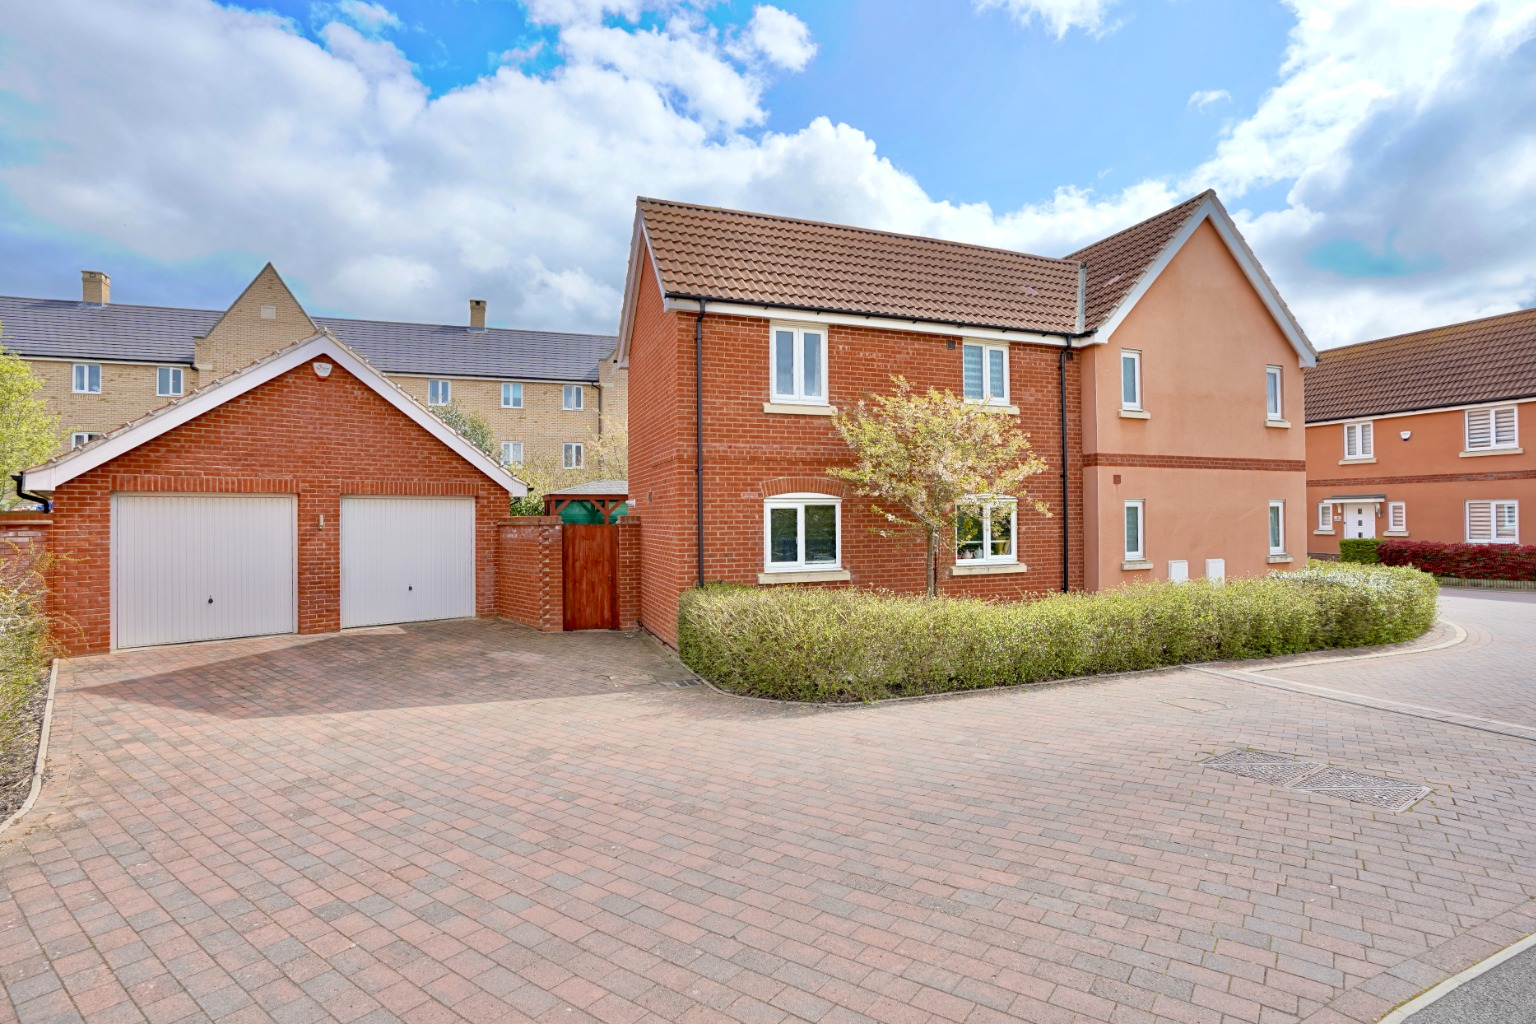 4 bed  for sale in Daffodil Close, St. Neots, PE19